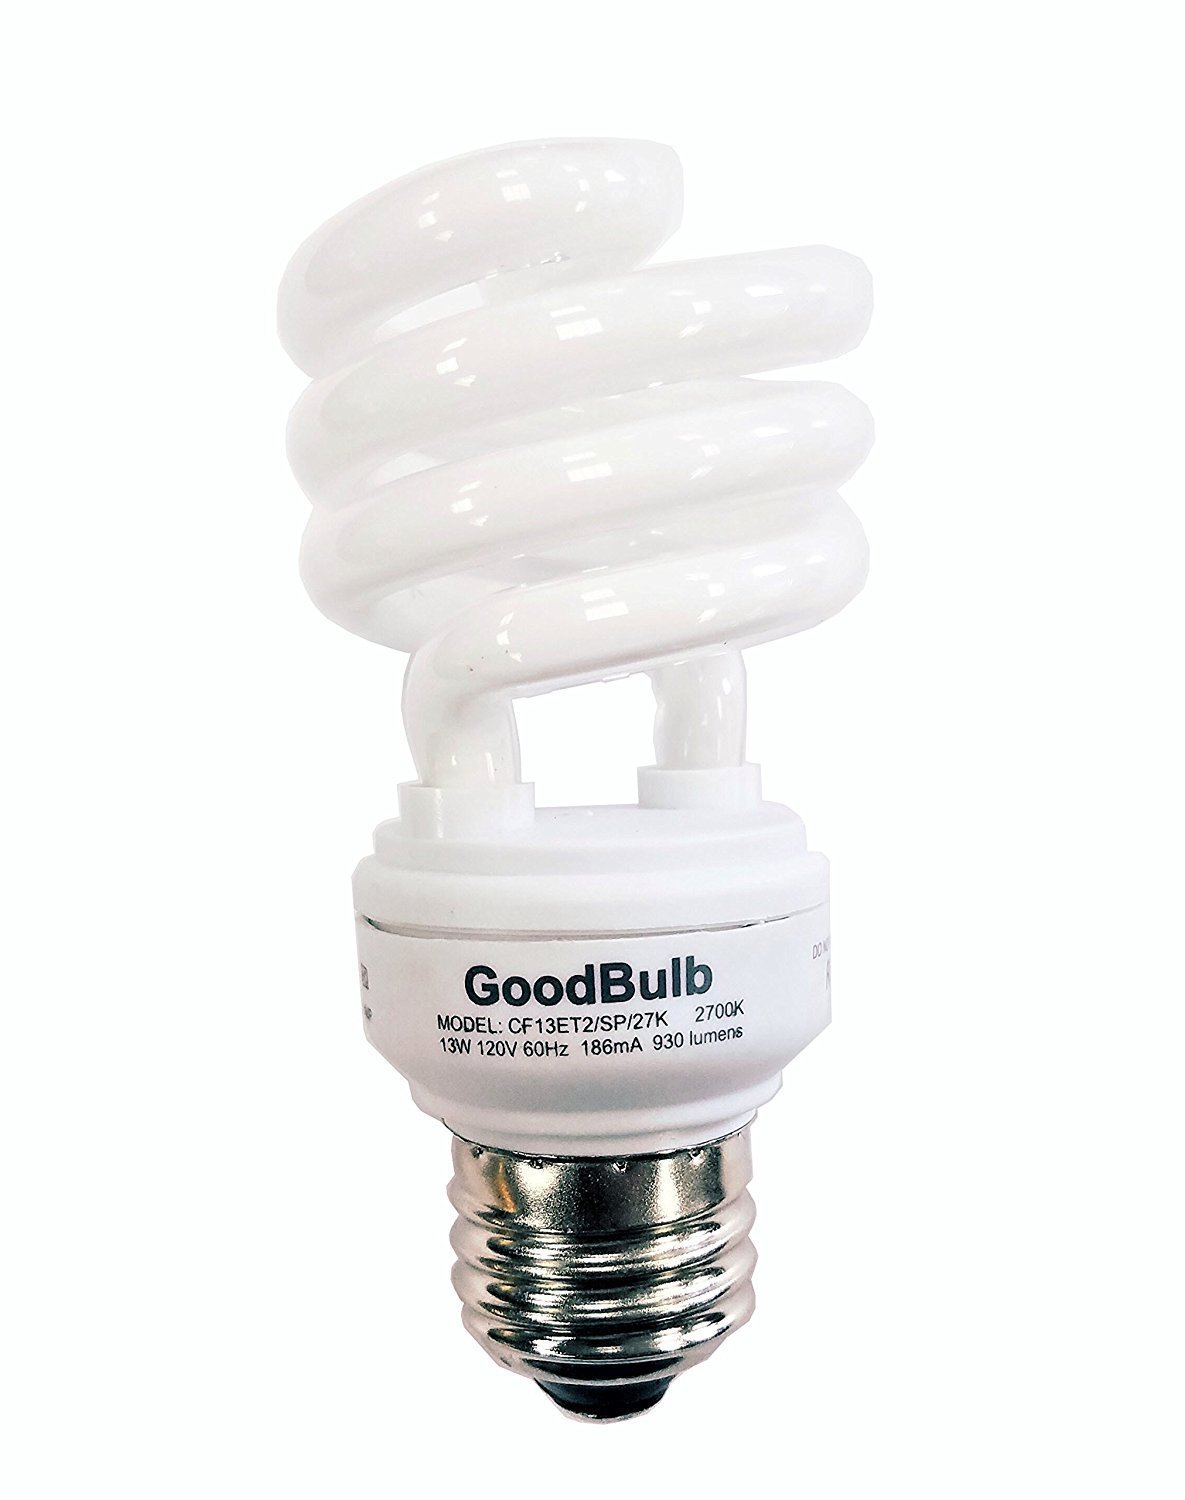 13 Watt Compact Fluorescent Bulb - Warm White Light Bulb - Ultra Mini Spiral CFL Light Bulbs - 2700K - E26 Base - 6 Pack - GoodBulb